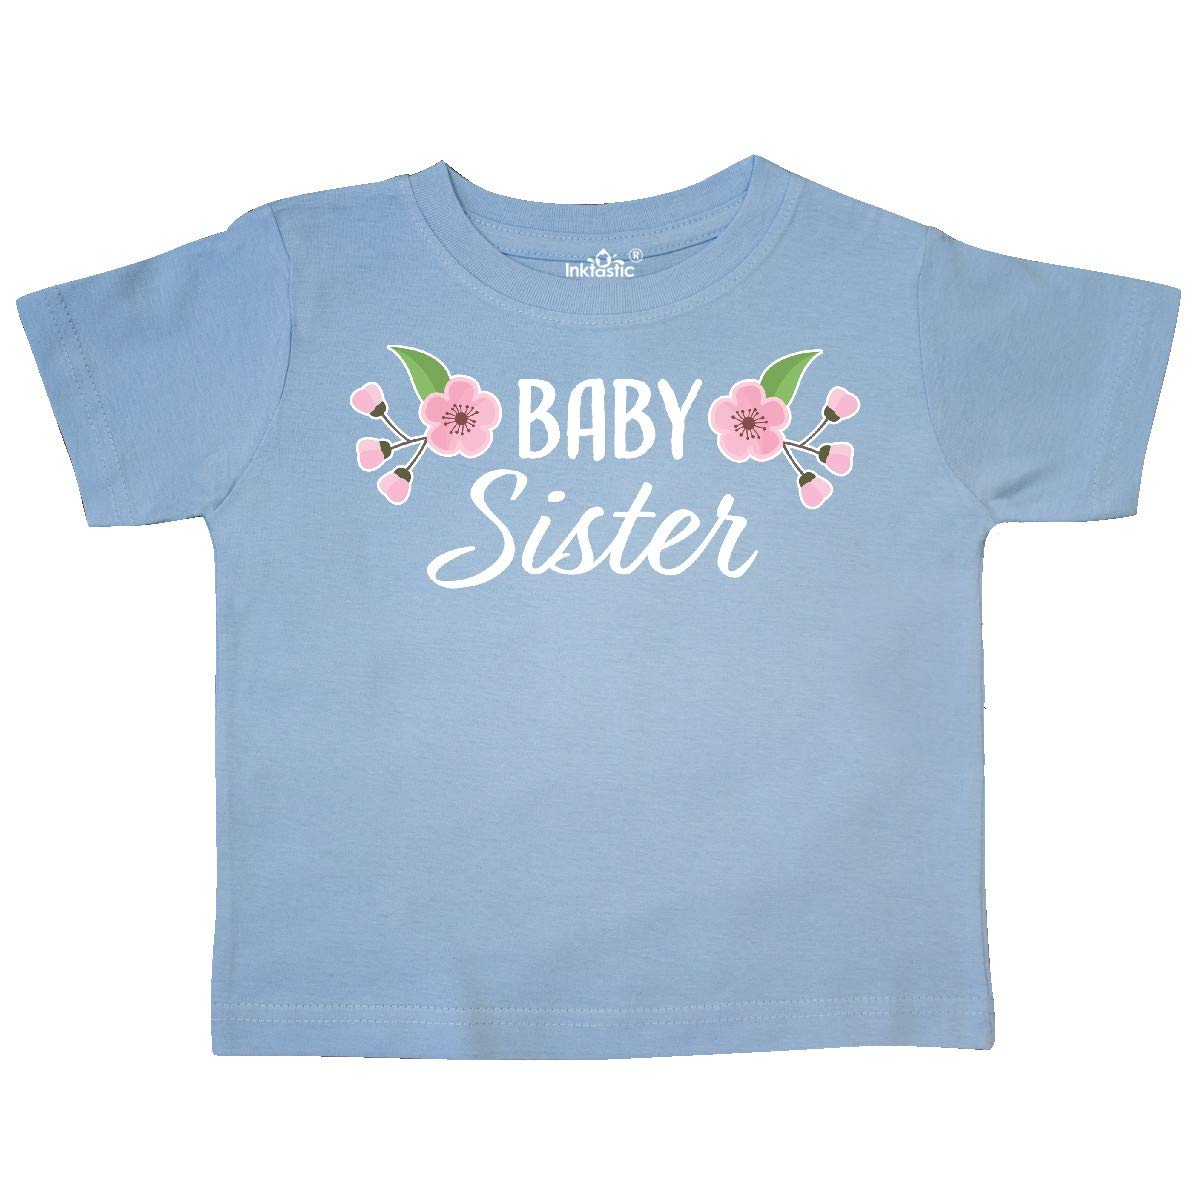 inktastic Baby Sister with Cherry Blossom Flowers Toddler T-Shirt